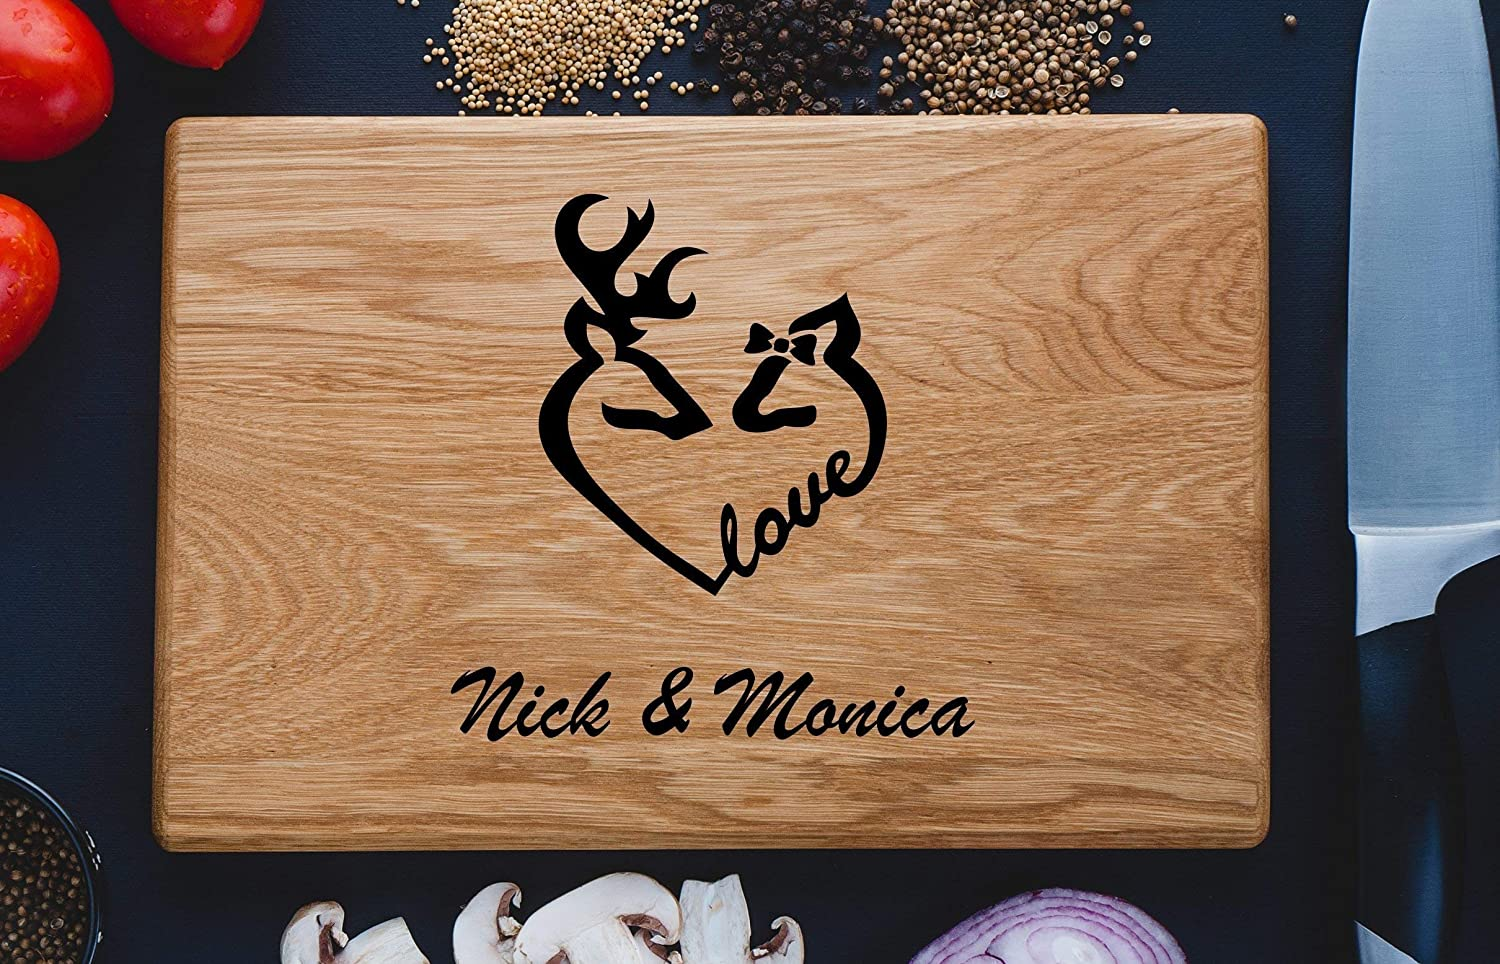 Deers Love Couple Personalized Engraved Cutting Board Wedding Gift Anniversary Gifts Housewarming Birthday Corporate Christmas Bride Shower Family custom02